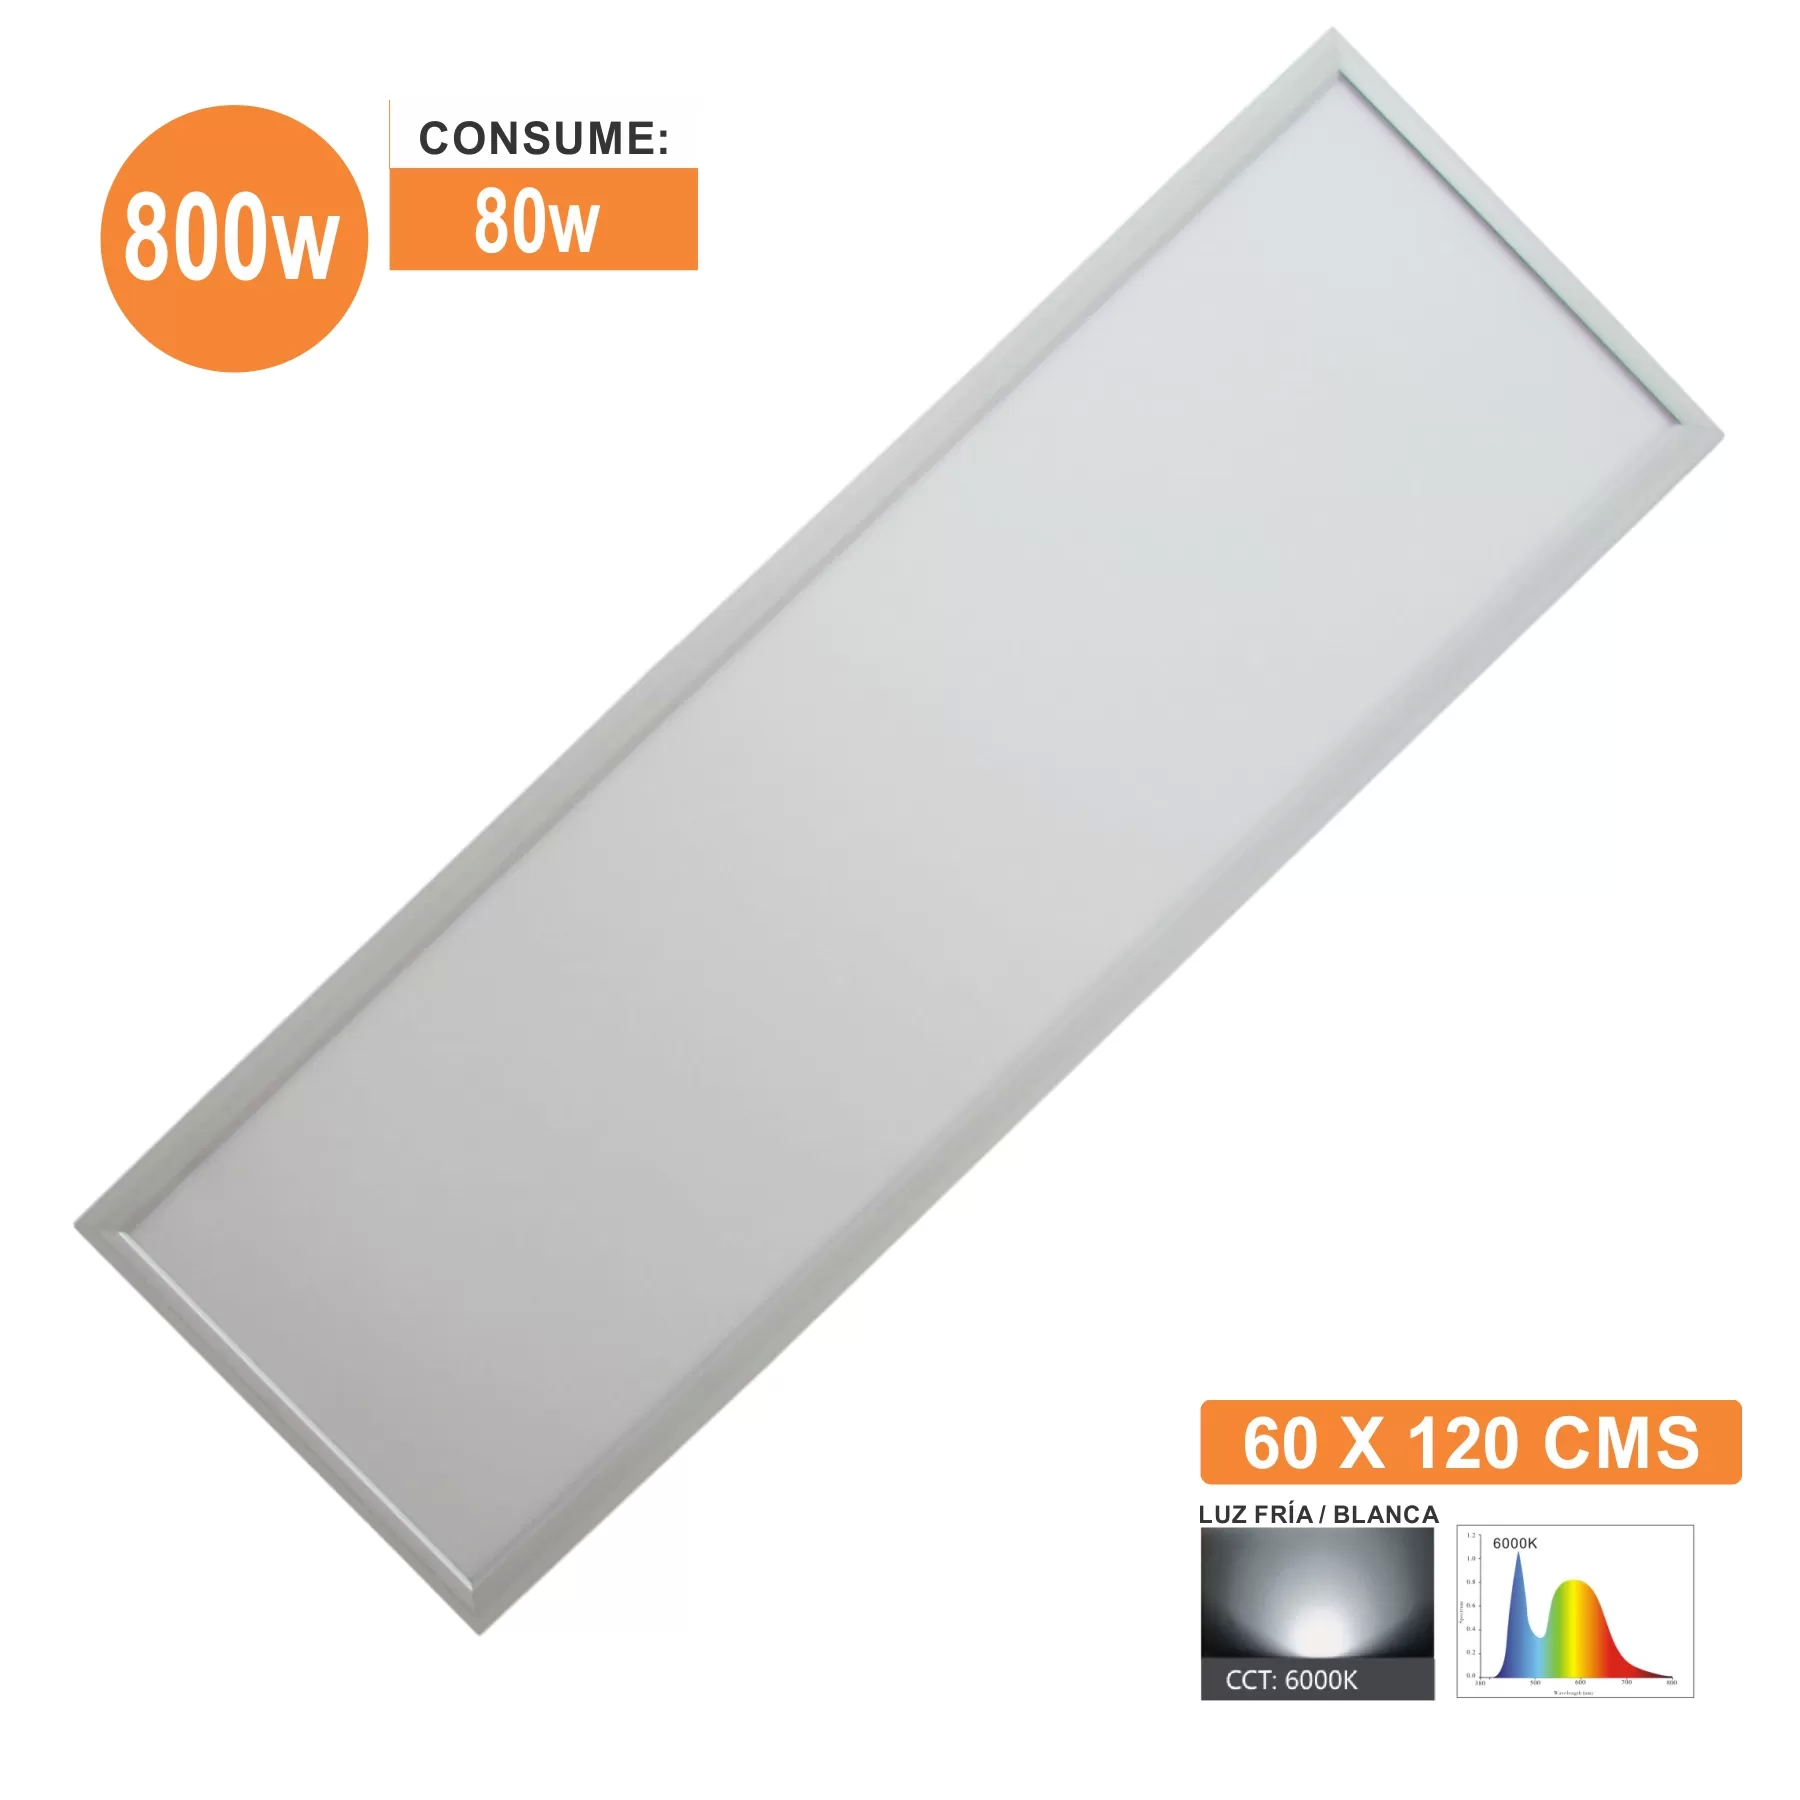 PANEL LED 60X120 80W | ILV Iluminación